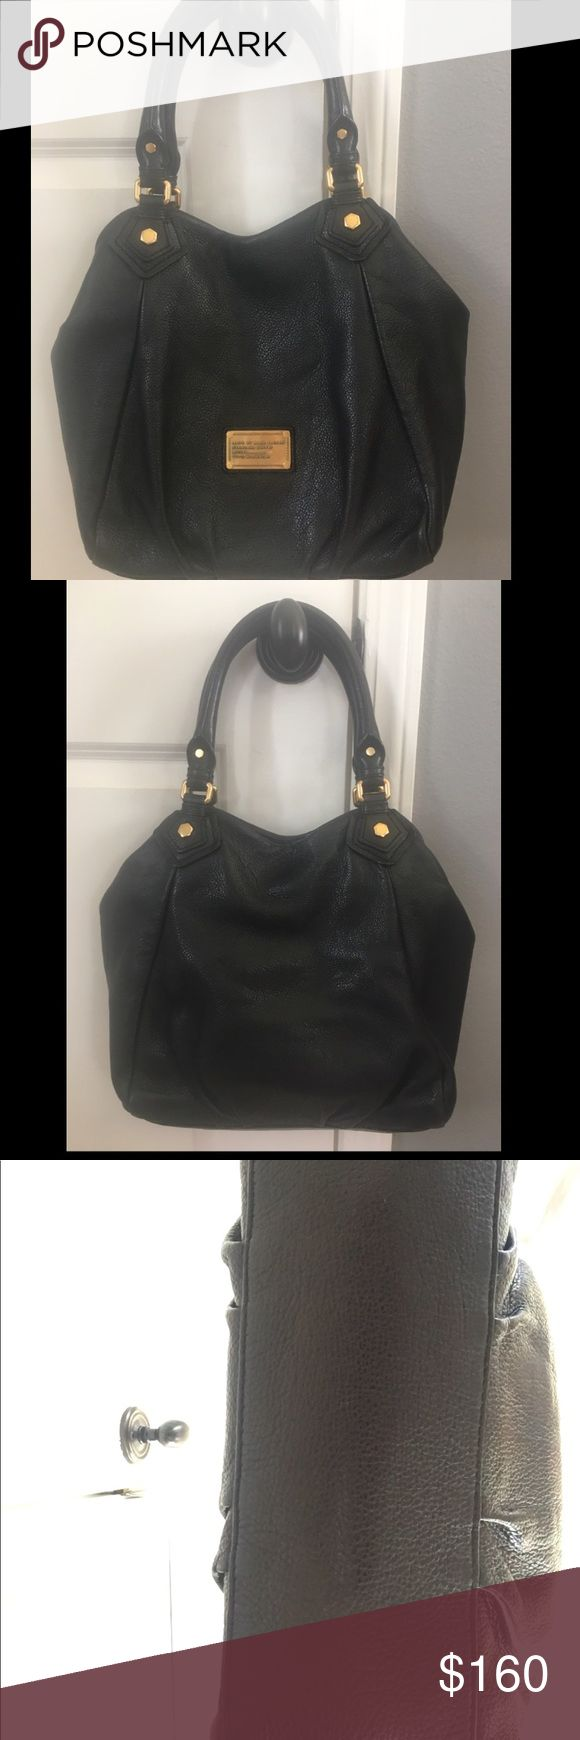 MARC by Marc Jacobs Bag MARC BY MARC JACOBS Classic Q FRAN black Leather Large Hobo Bag VGC. The leather is in beautiful condition - cannot tell that it has be used. It has the signature brass logo plaque on front exterior, signature black & white fabric interior lining, brass toned hardware and a magnetic closure. This beautiful bag is great for everyday day wear 😊 Reasonable offers accepted! Marc By Marc Jacobs Bags